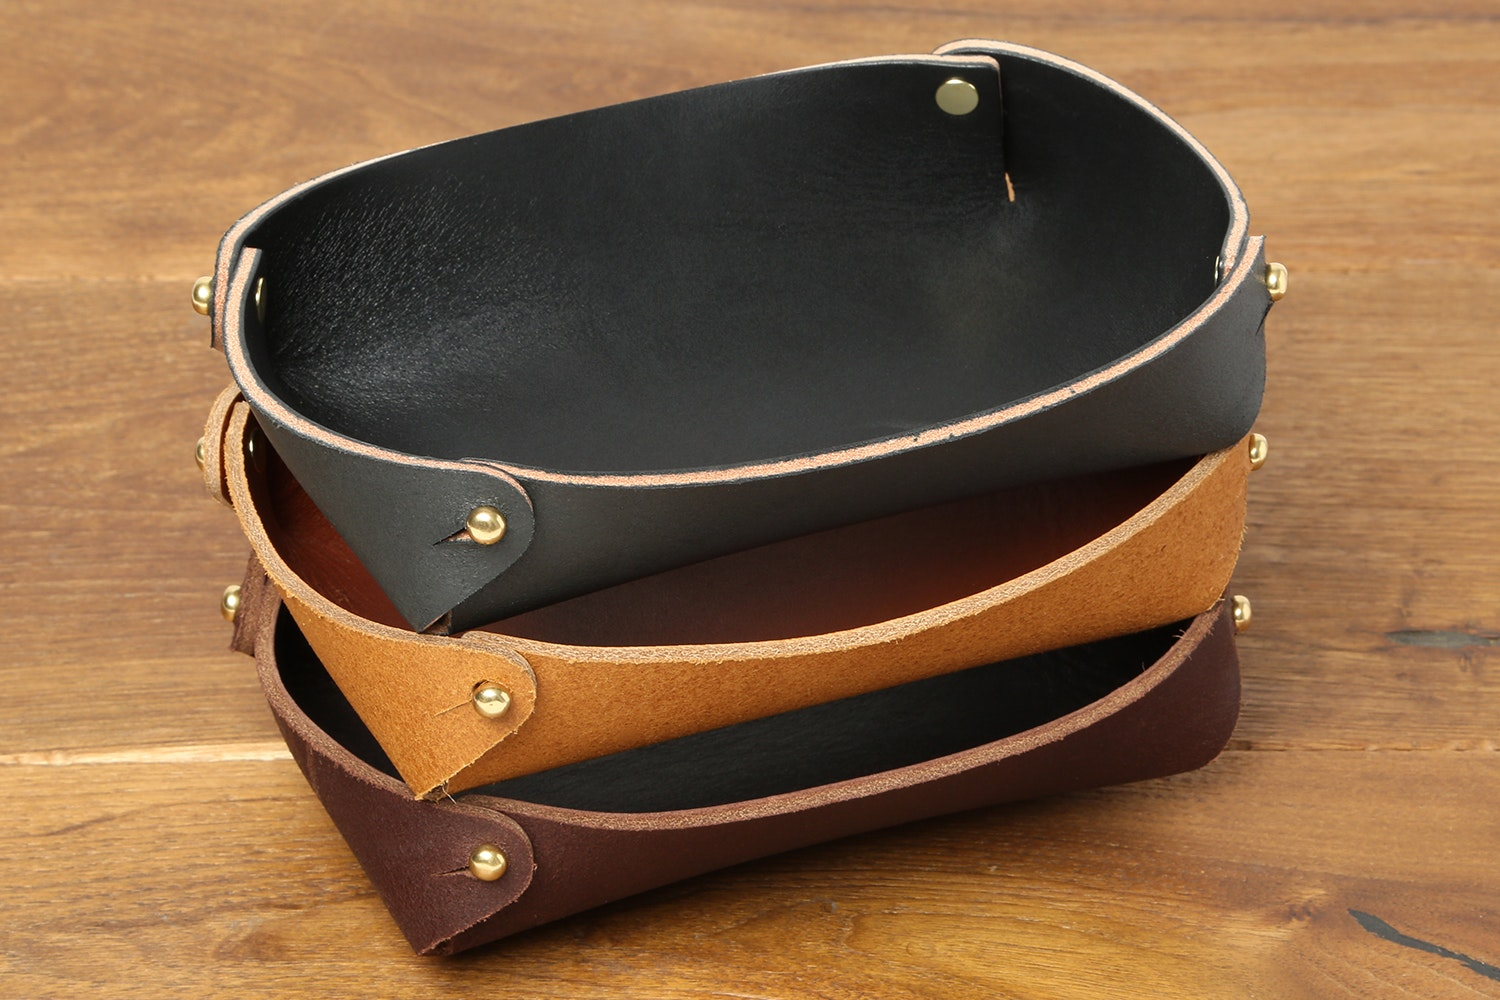 Hollows Leather Pocket Dump Tray